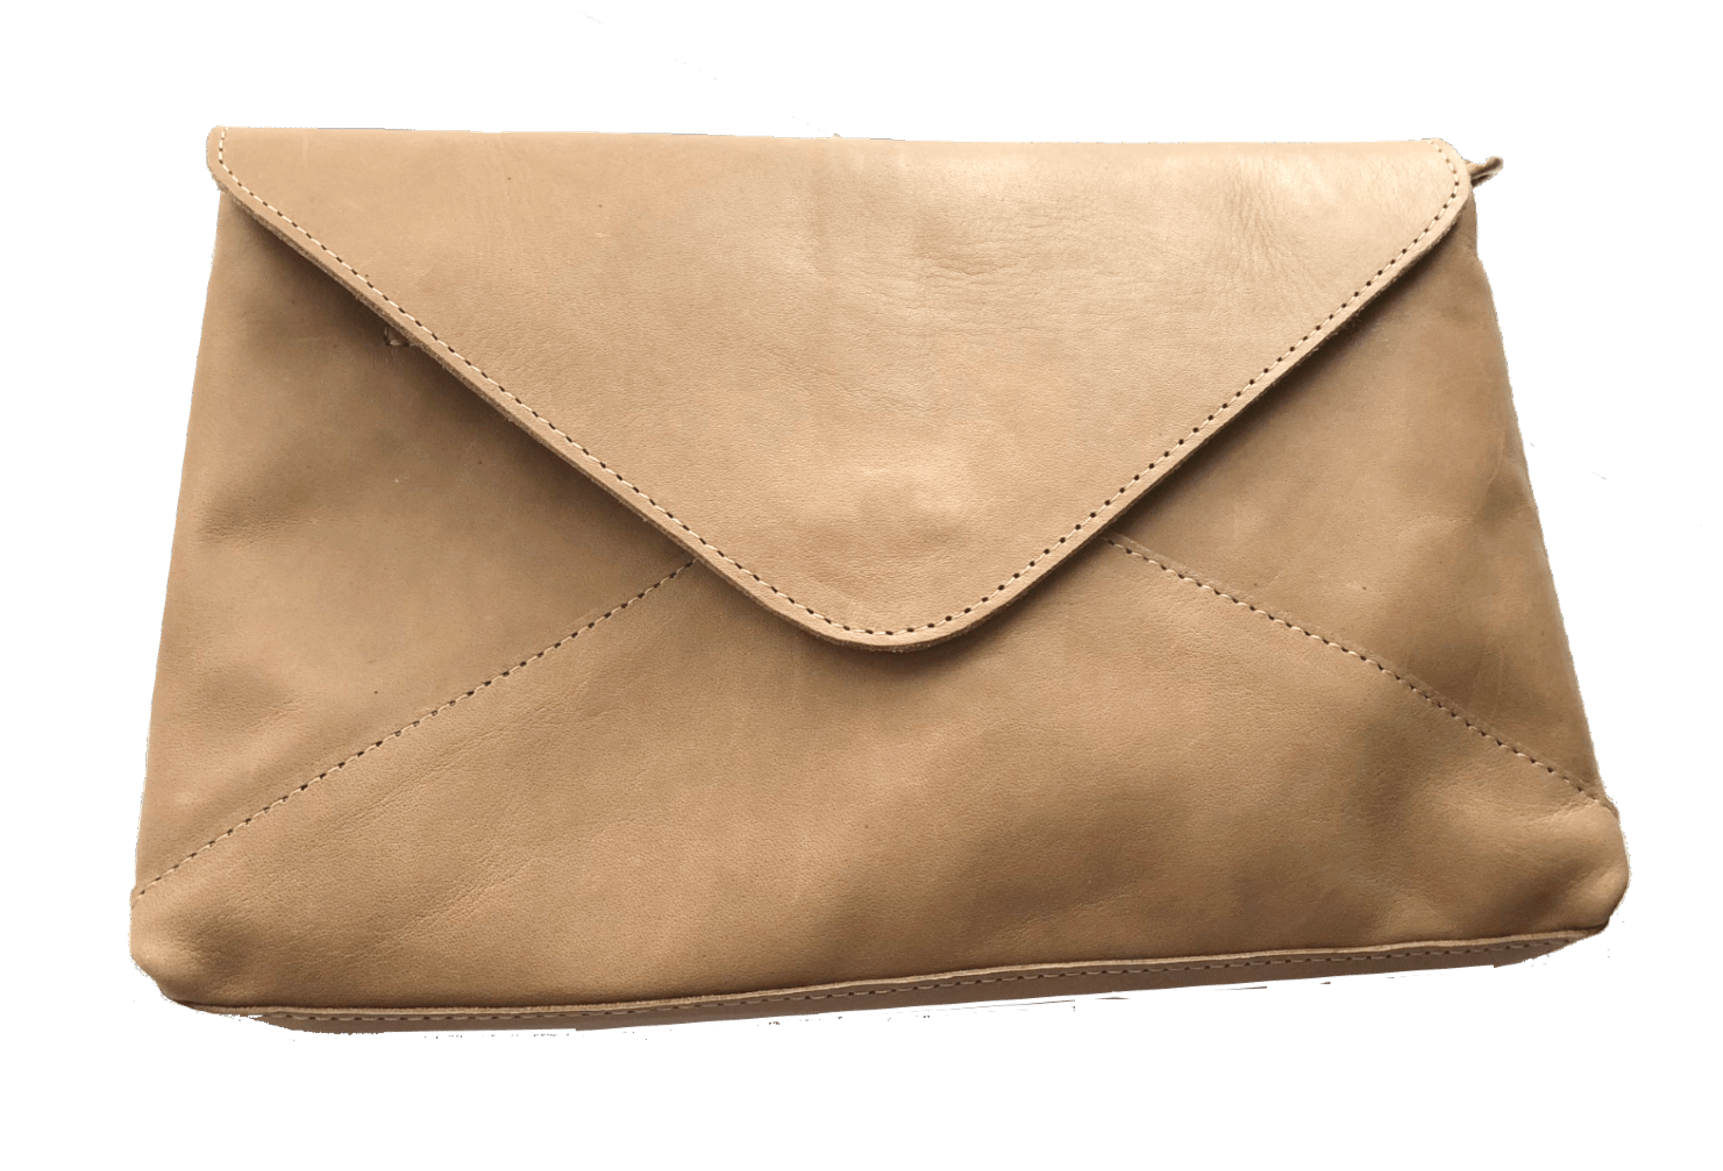 Madrid Ivory Envelope Pouch and Cross Body Bag